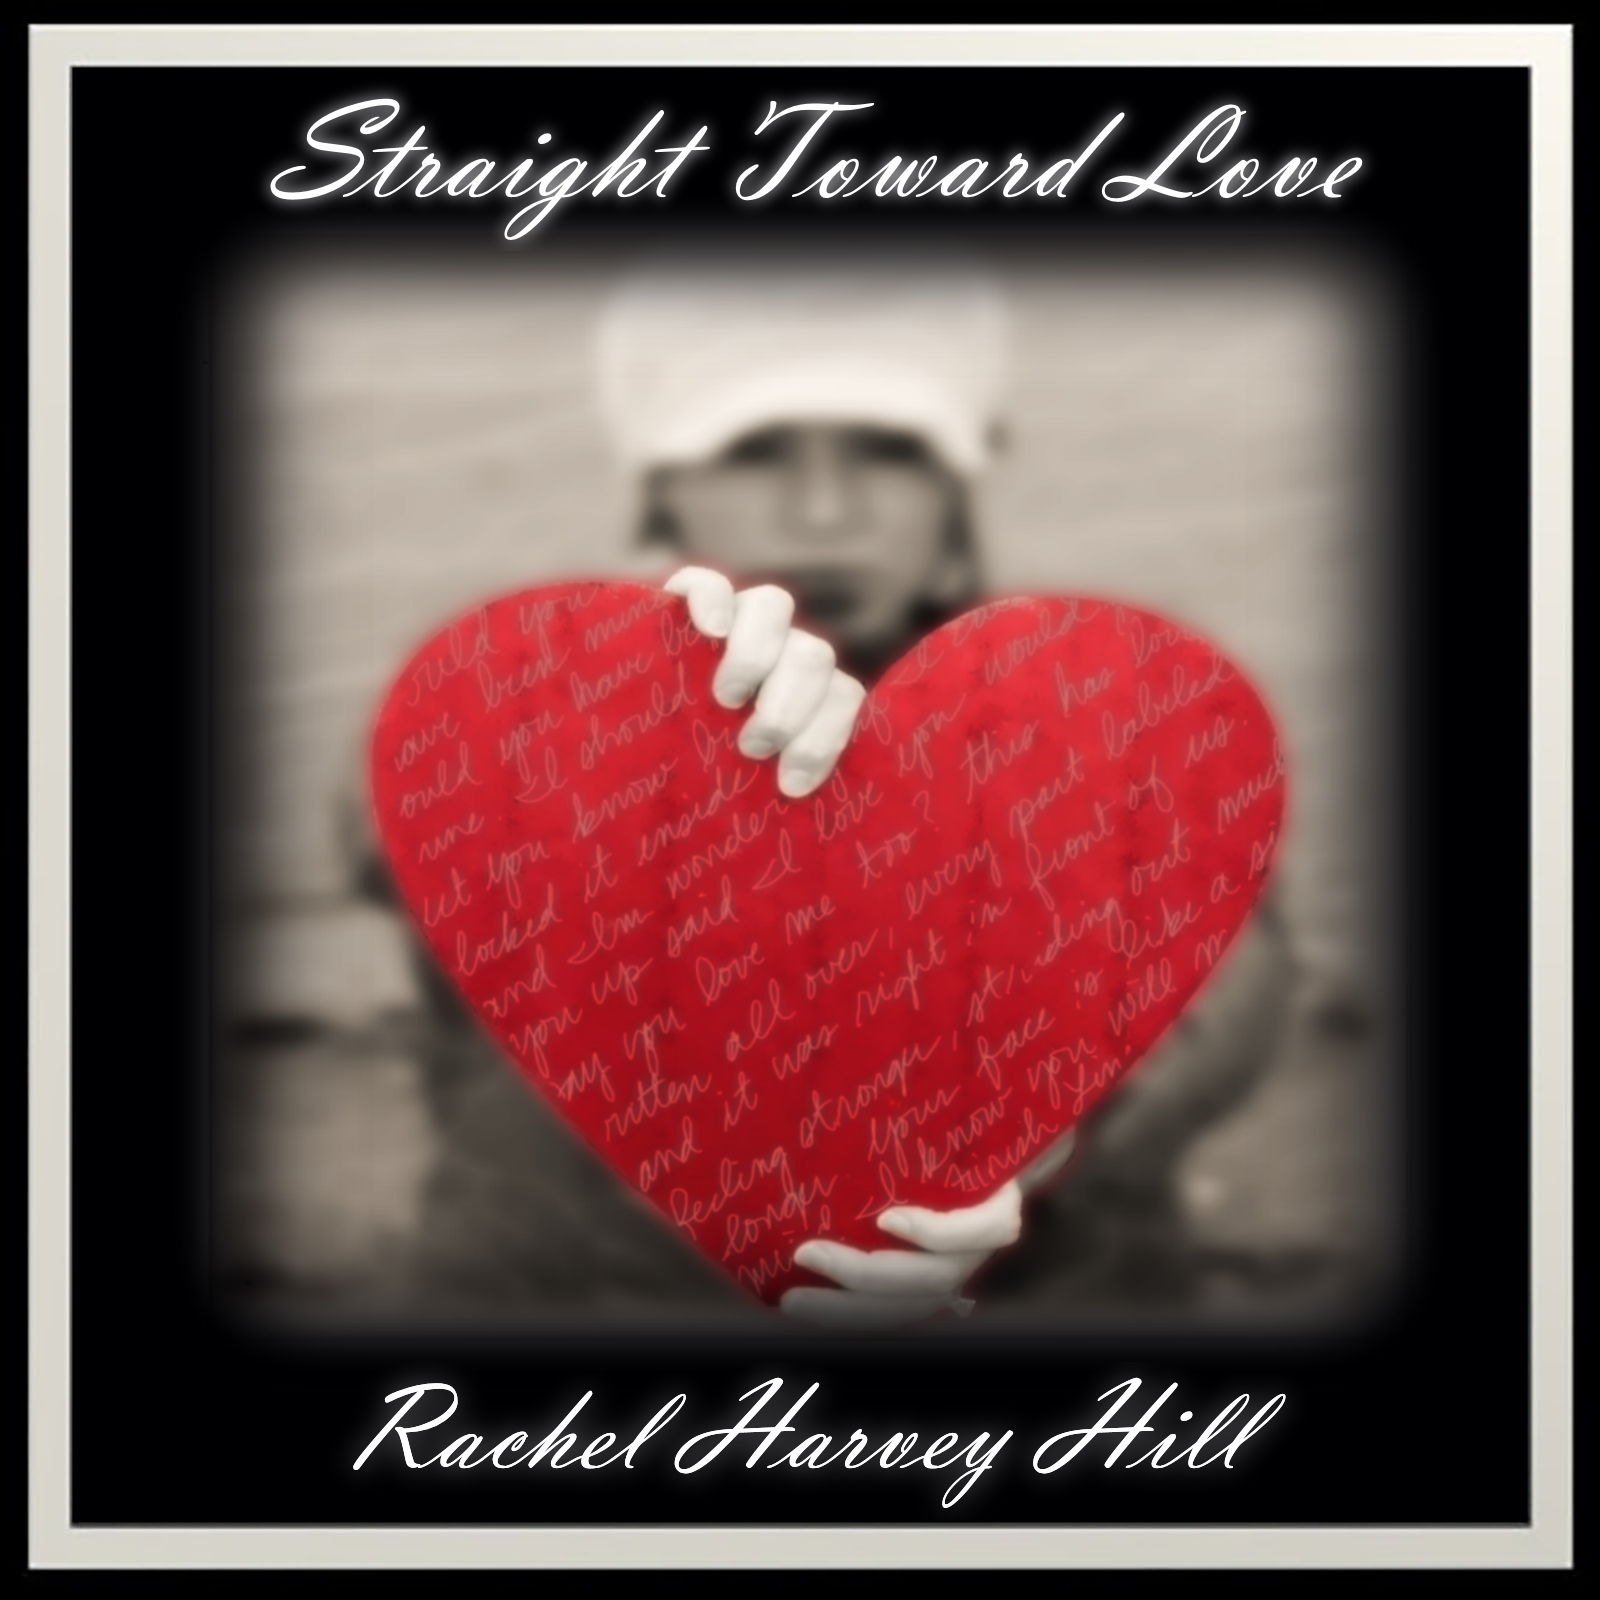 Rachel Harvey Album Cover Final 1600x1600.jpg